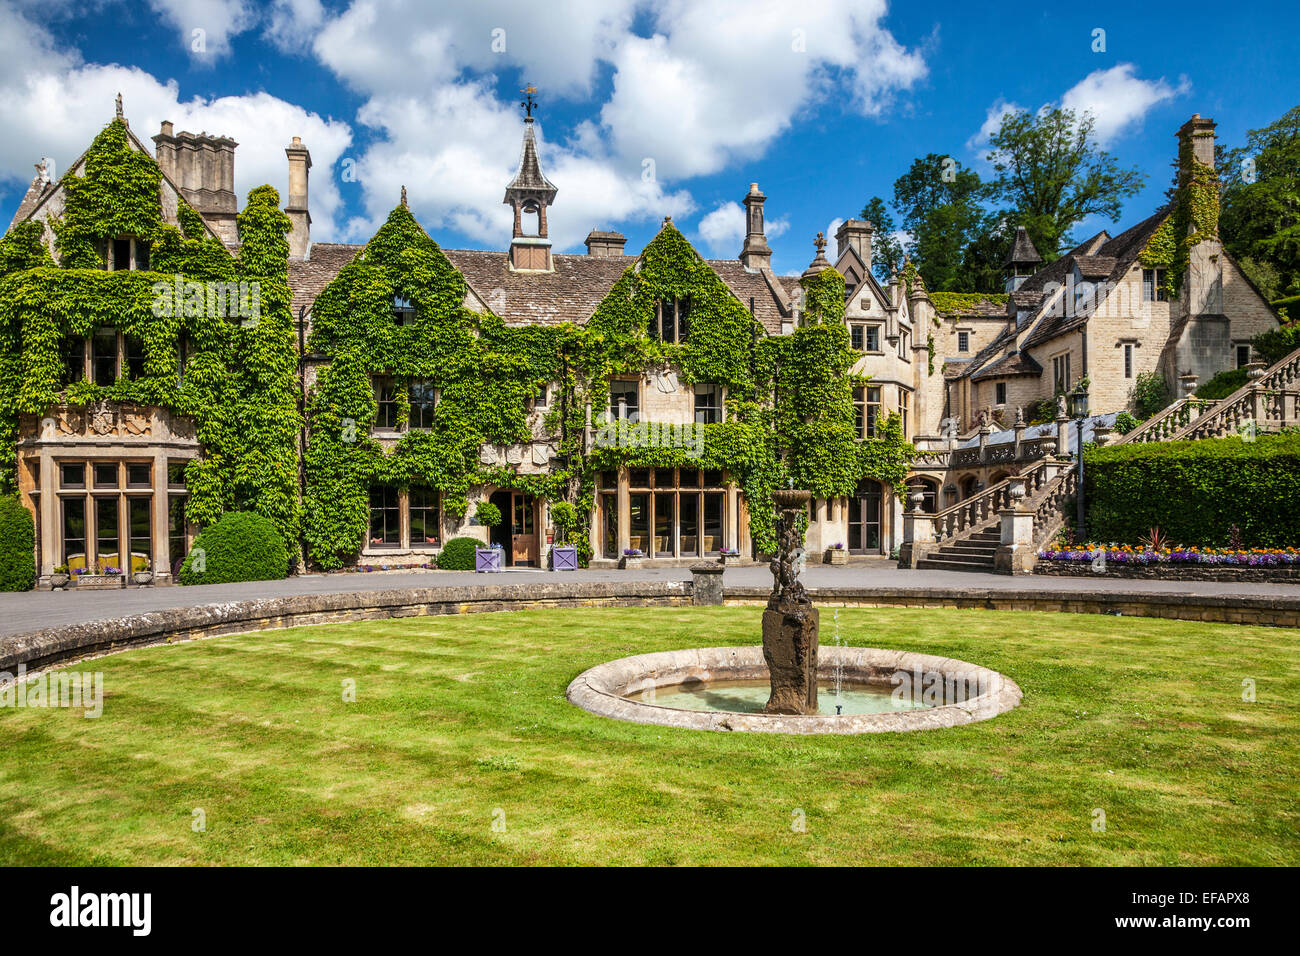 The Manor House Hotel in the Cotswold village of Castle ...